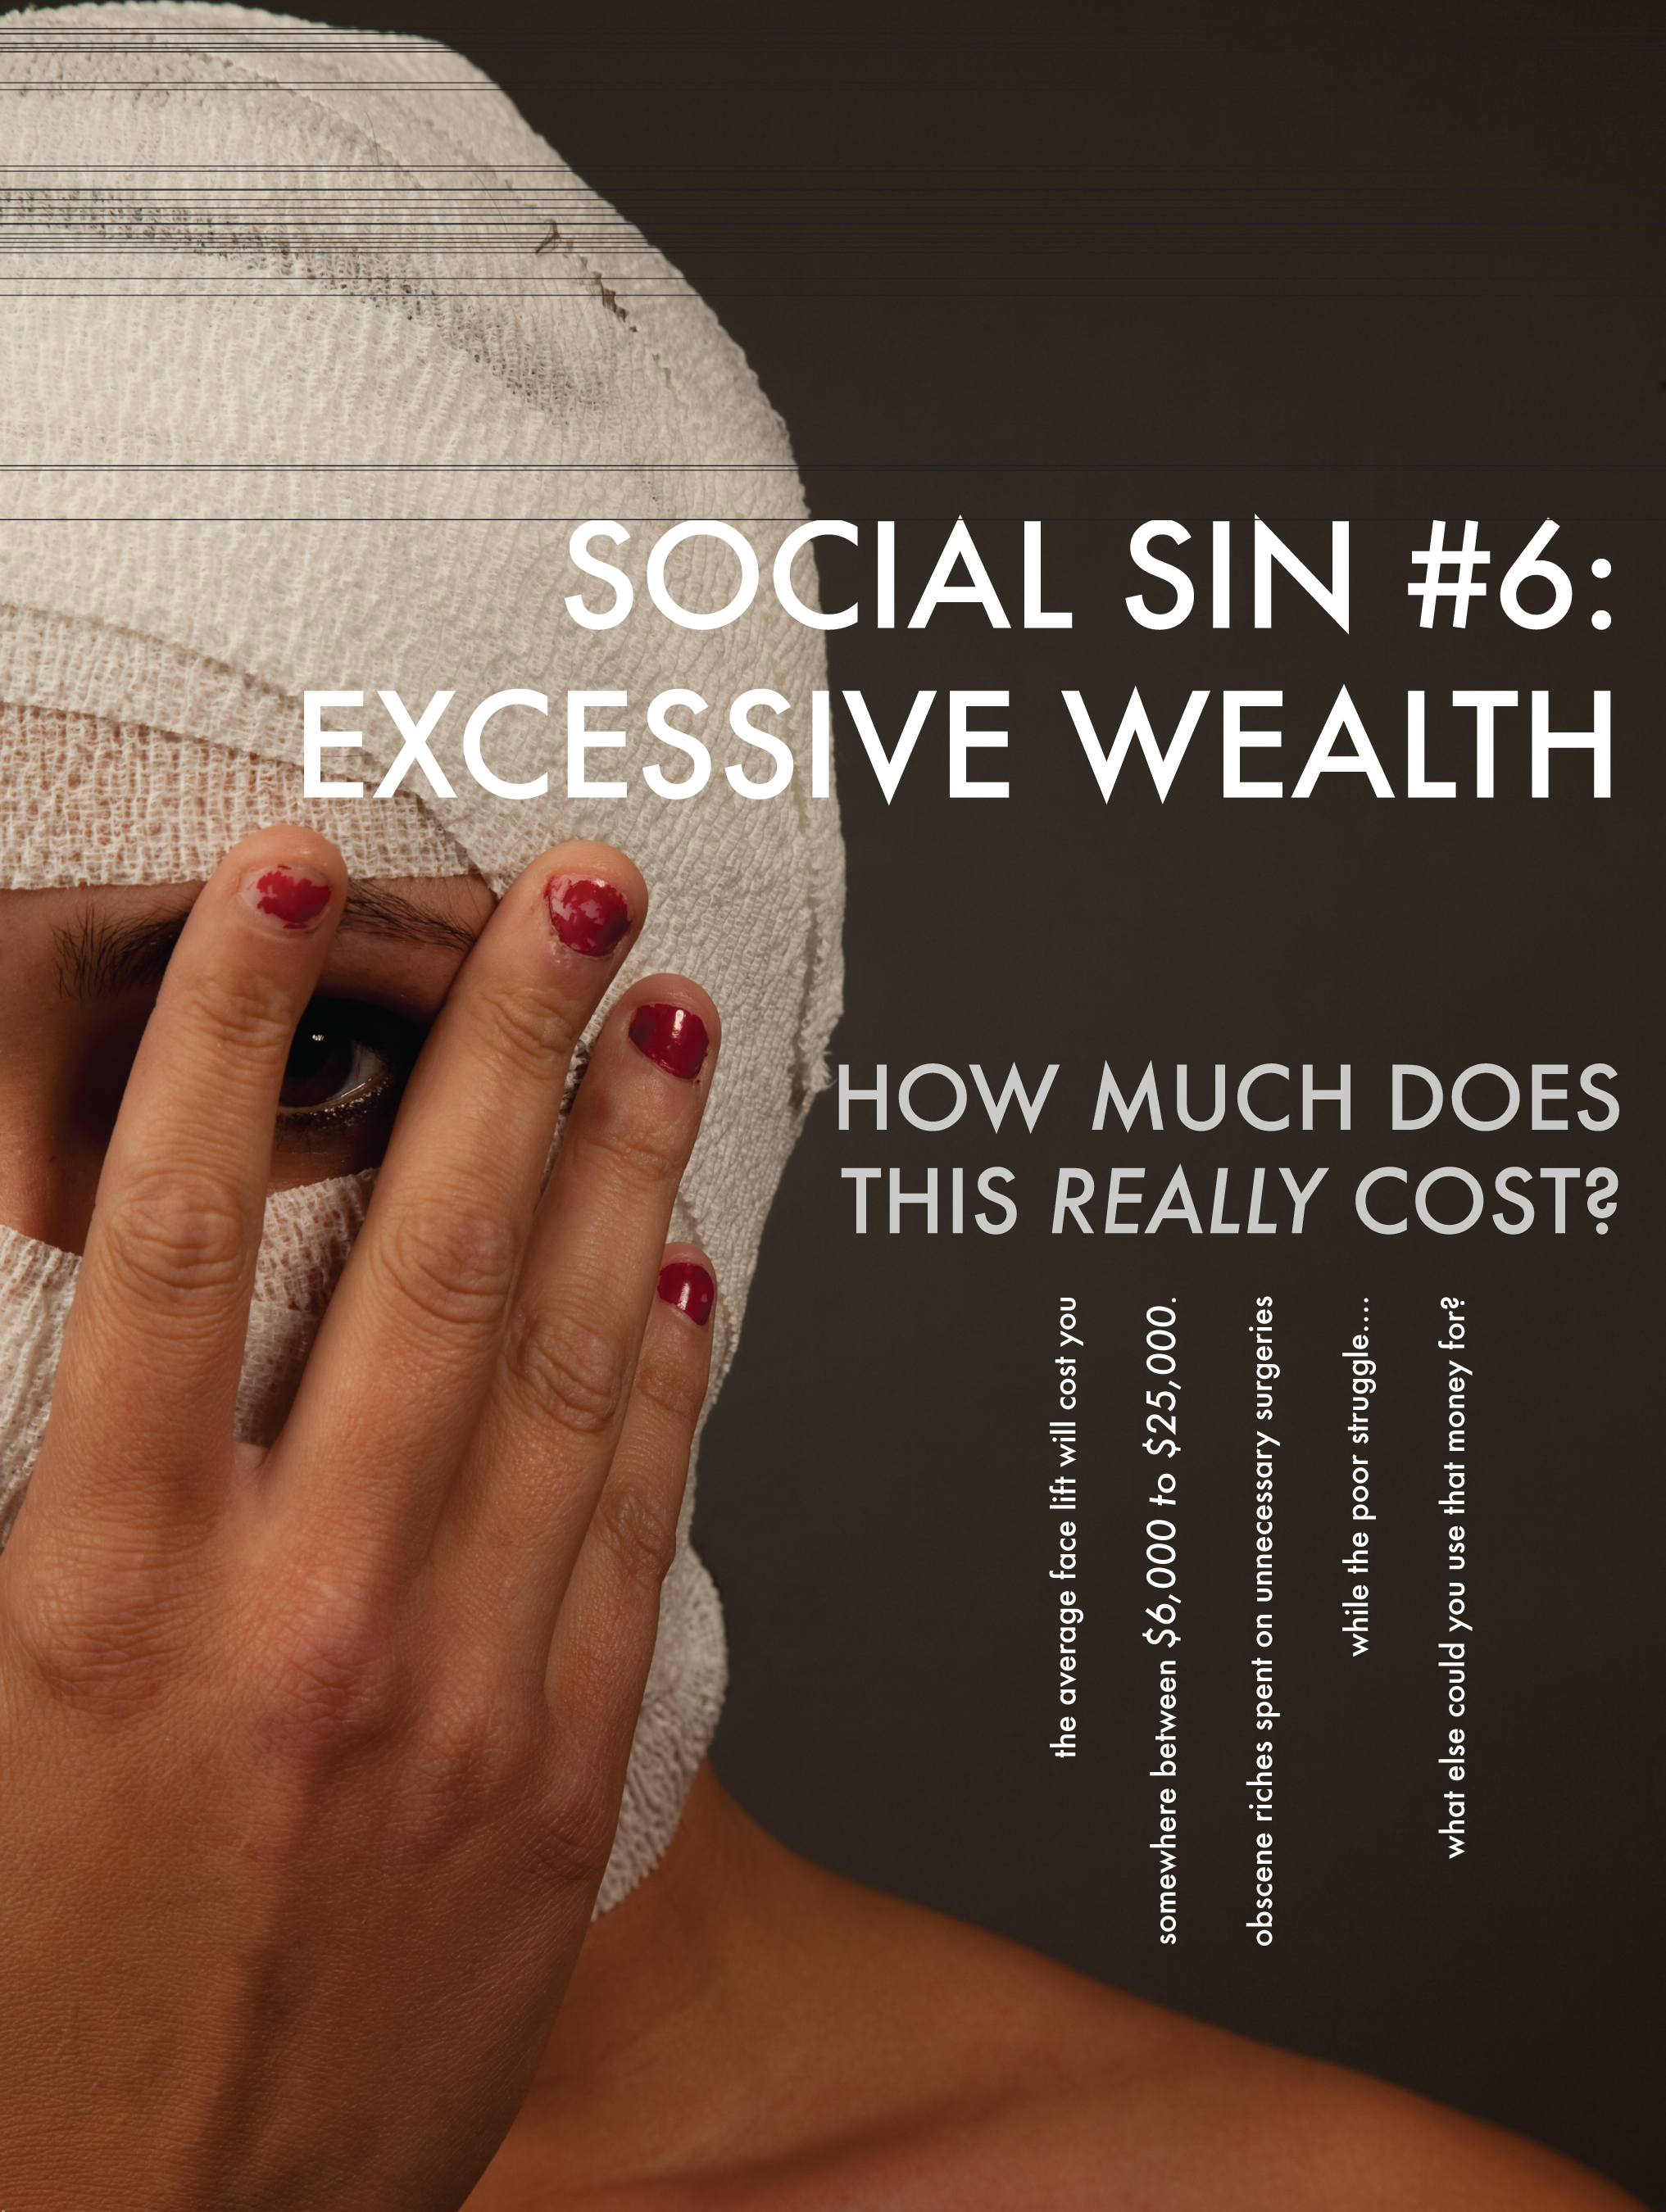 Social Sin #6 Excessive Wealth